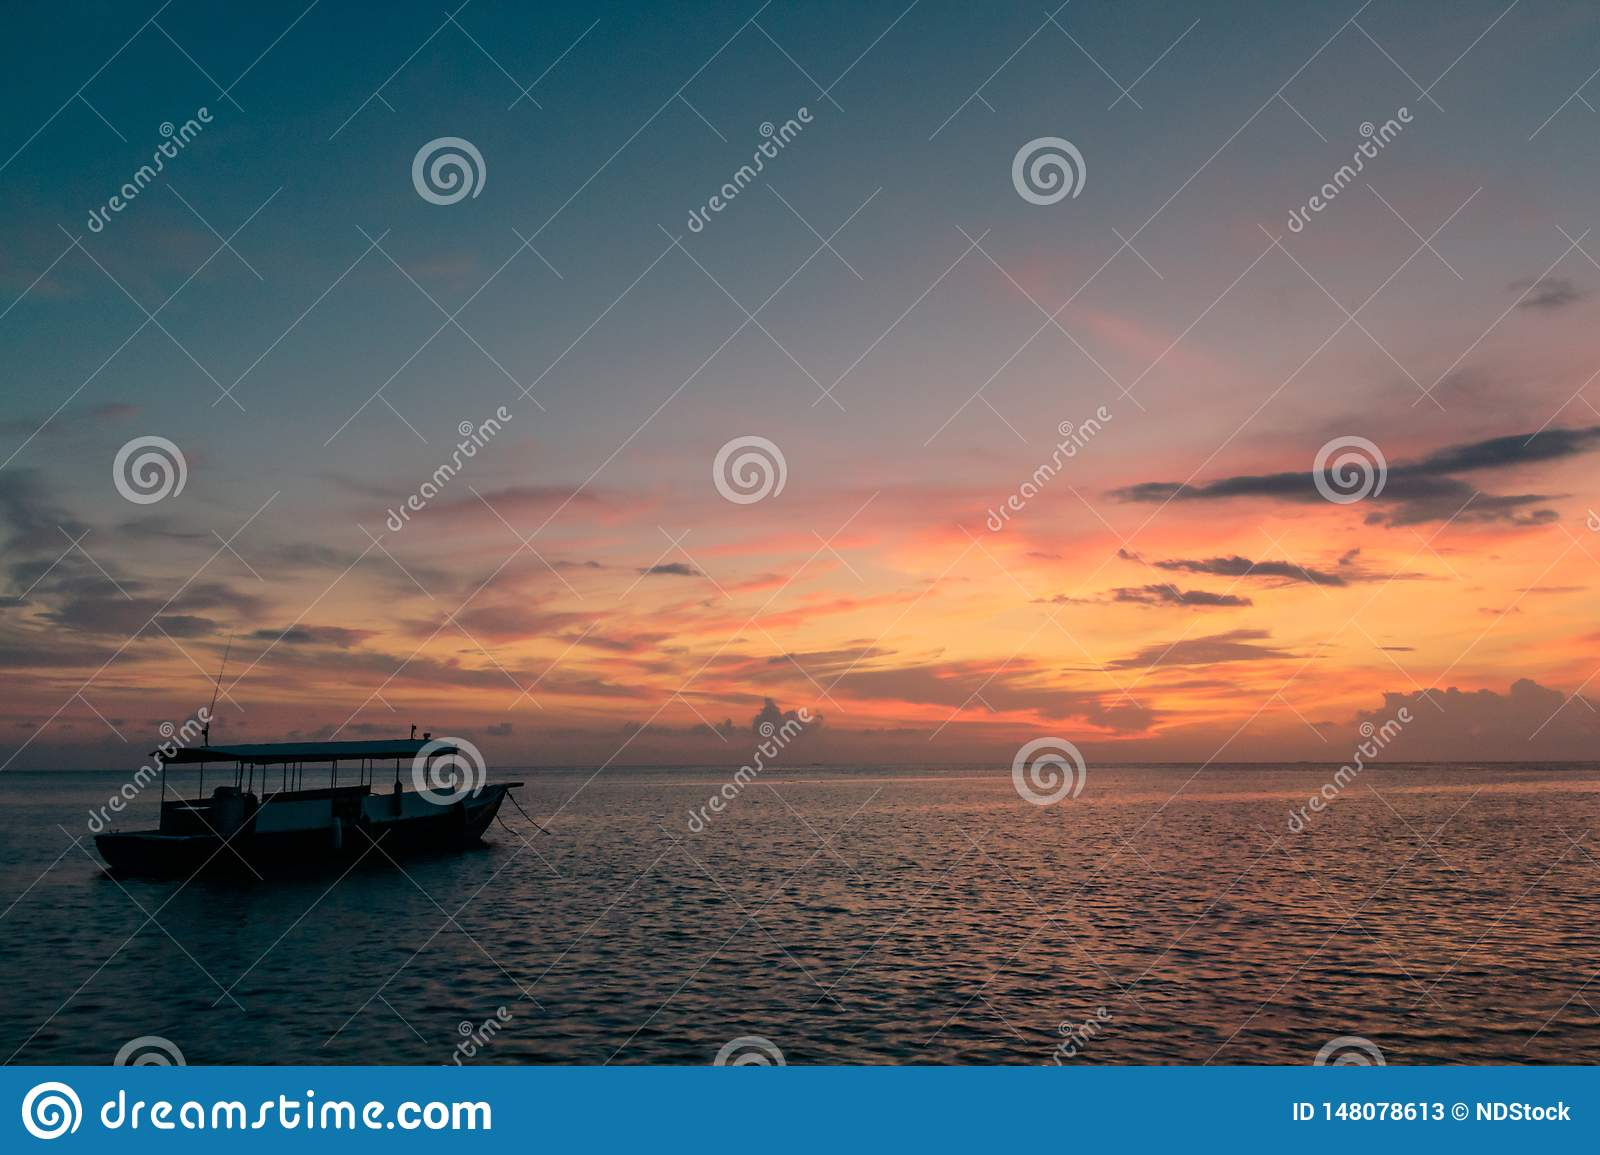 Colorful sunset reflection on a cloudy sky and sea. little boat on the ocean